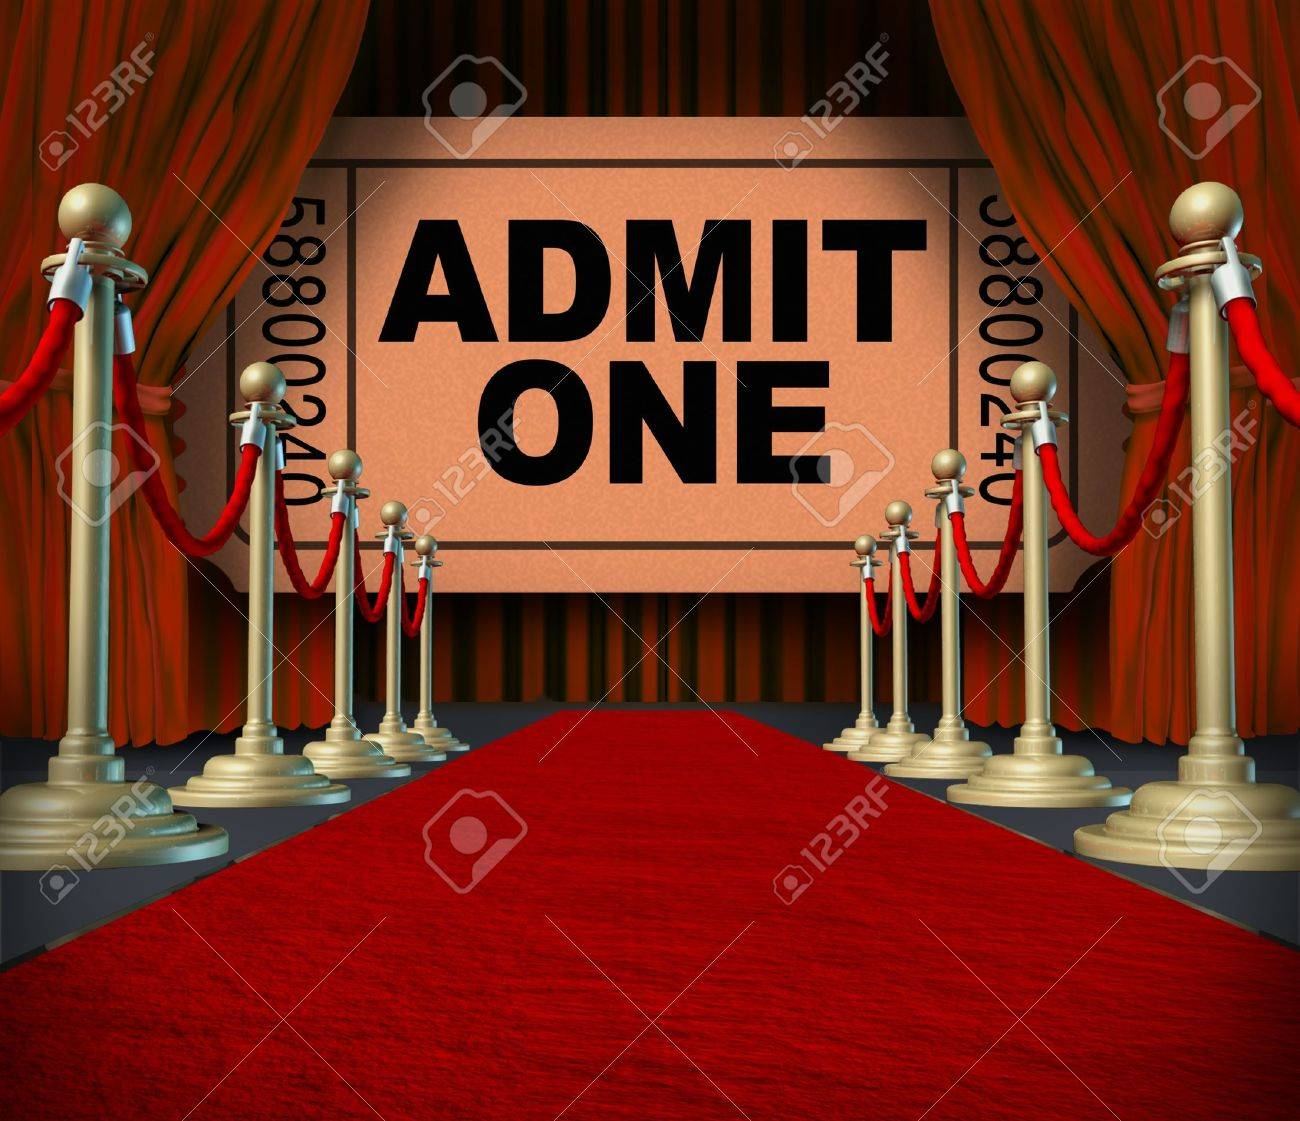 Velvet curtain club - Entertainment On The Red Carpet Theatrical Cinema Concept With An Admit One Movie Ticket Behind Red